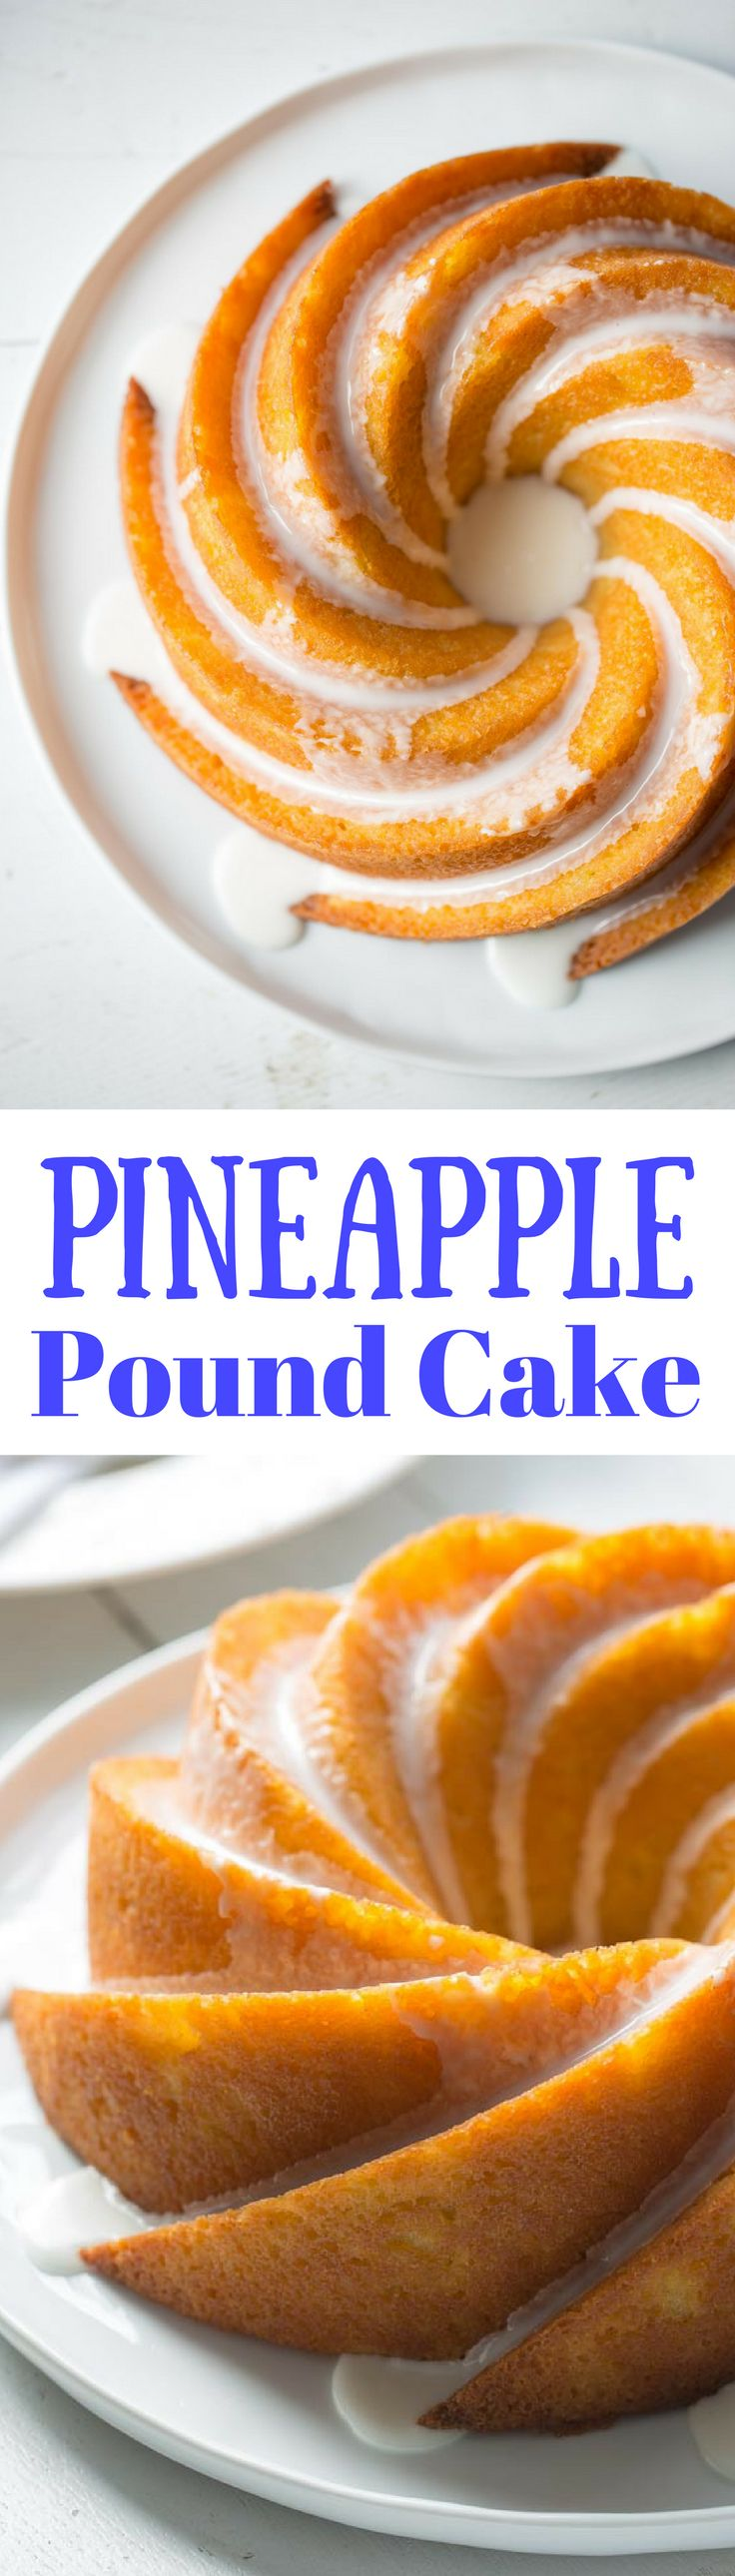 Pineapple+Pound+Cake+~+with+plenty+of+crushed+pineapple+baked+inside,+this+cake+is+a+tropical+treat!+Drizzled+with+a+simple+pineapple+icing.++